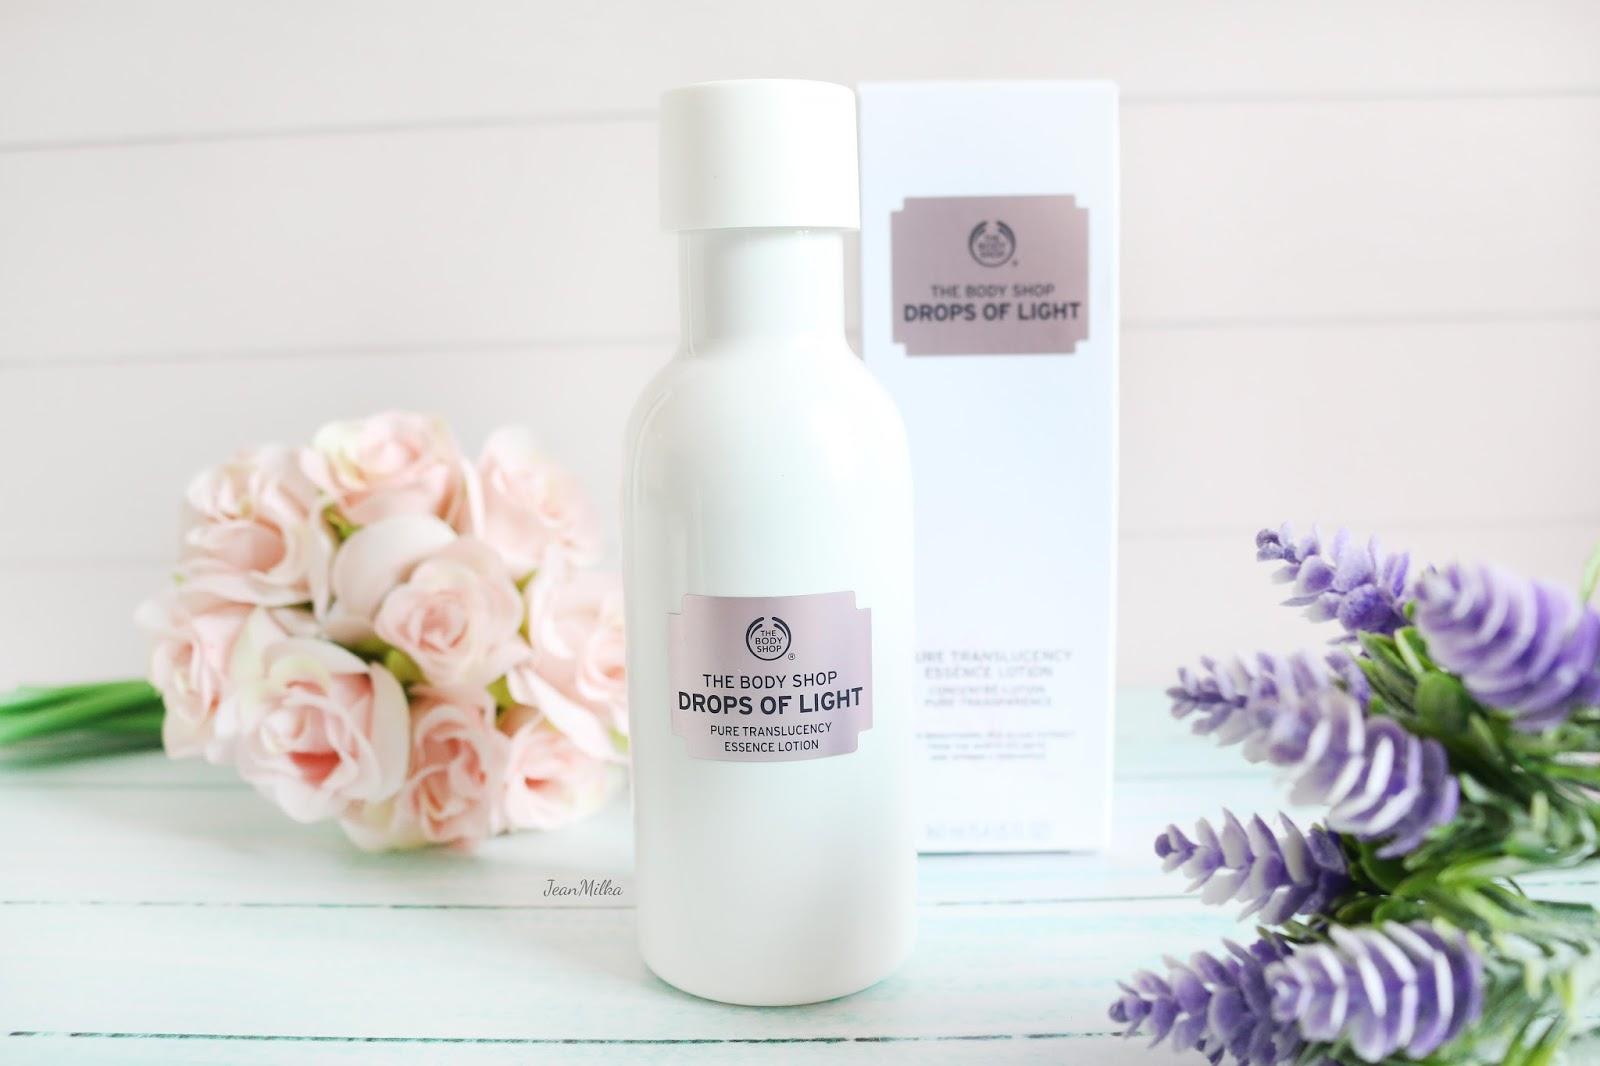 the body shop, body shop, body shop indonesia, drops of light, skin defence, the body shop drops of light, the body shop skin defence, skincare